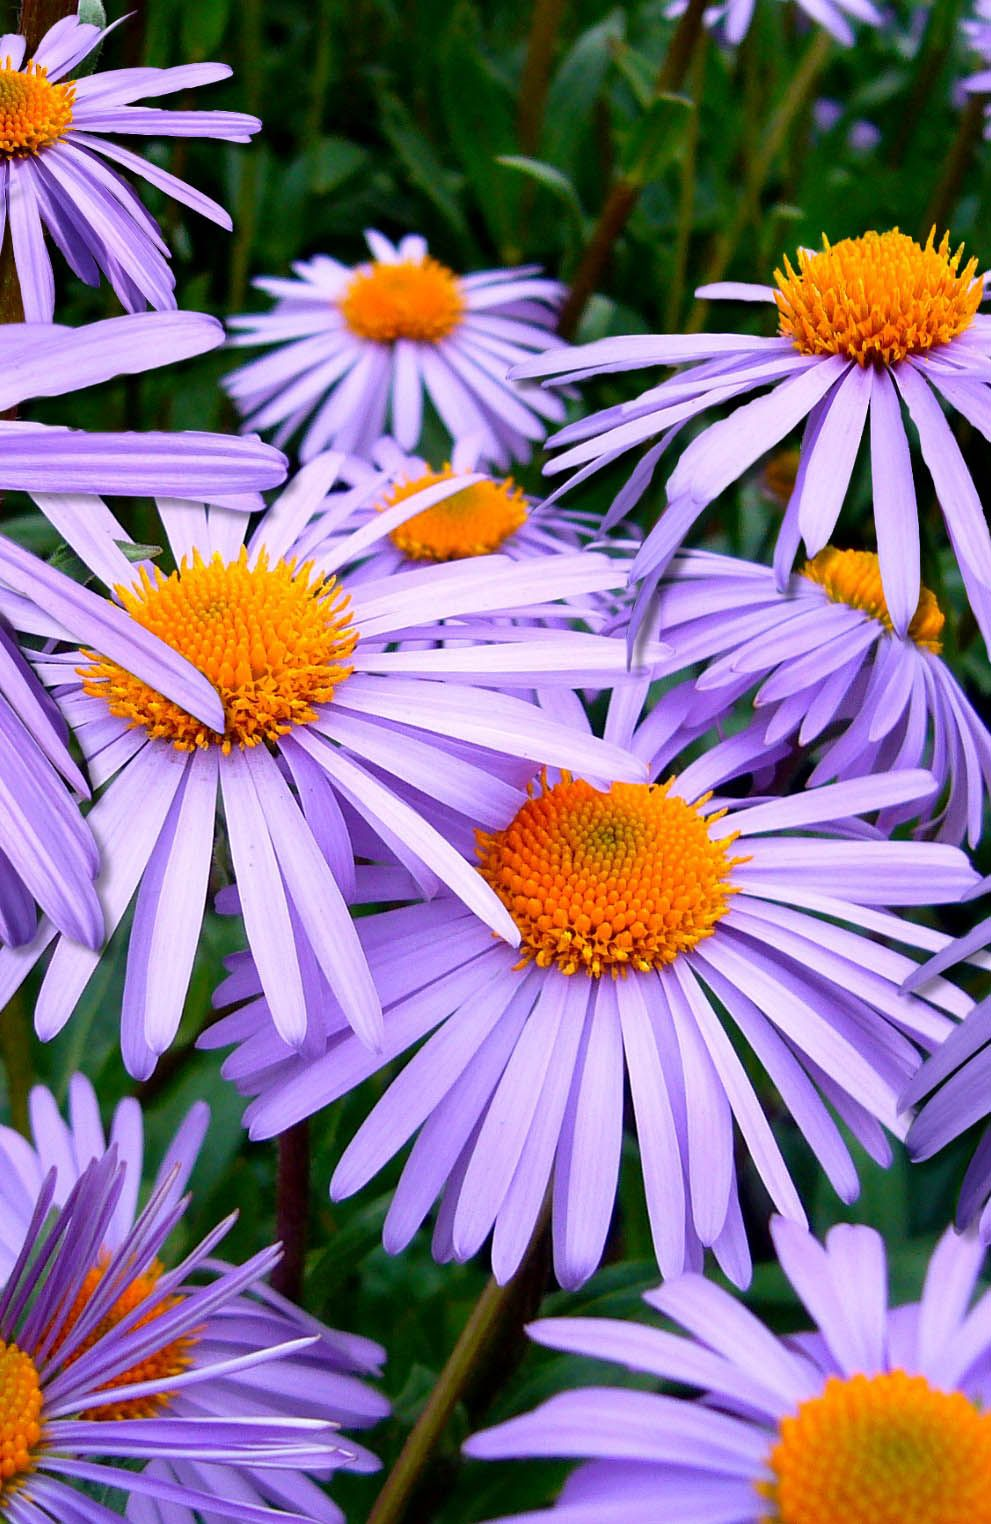 The 35 best flower photos beautiful flowers flower and aster i brought together the most beautiful flowers here you will find the 35 the best izmirmasajfo